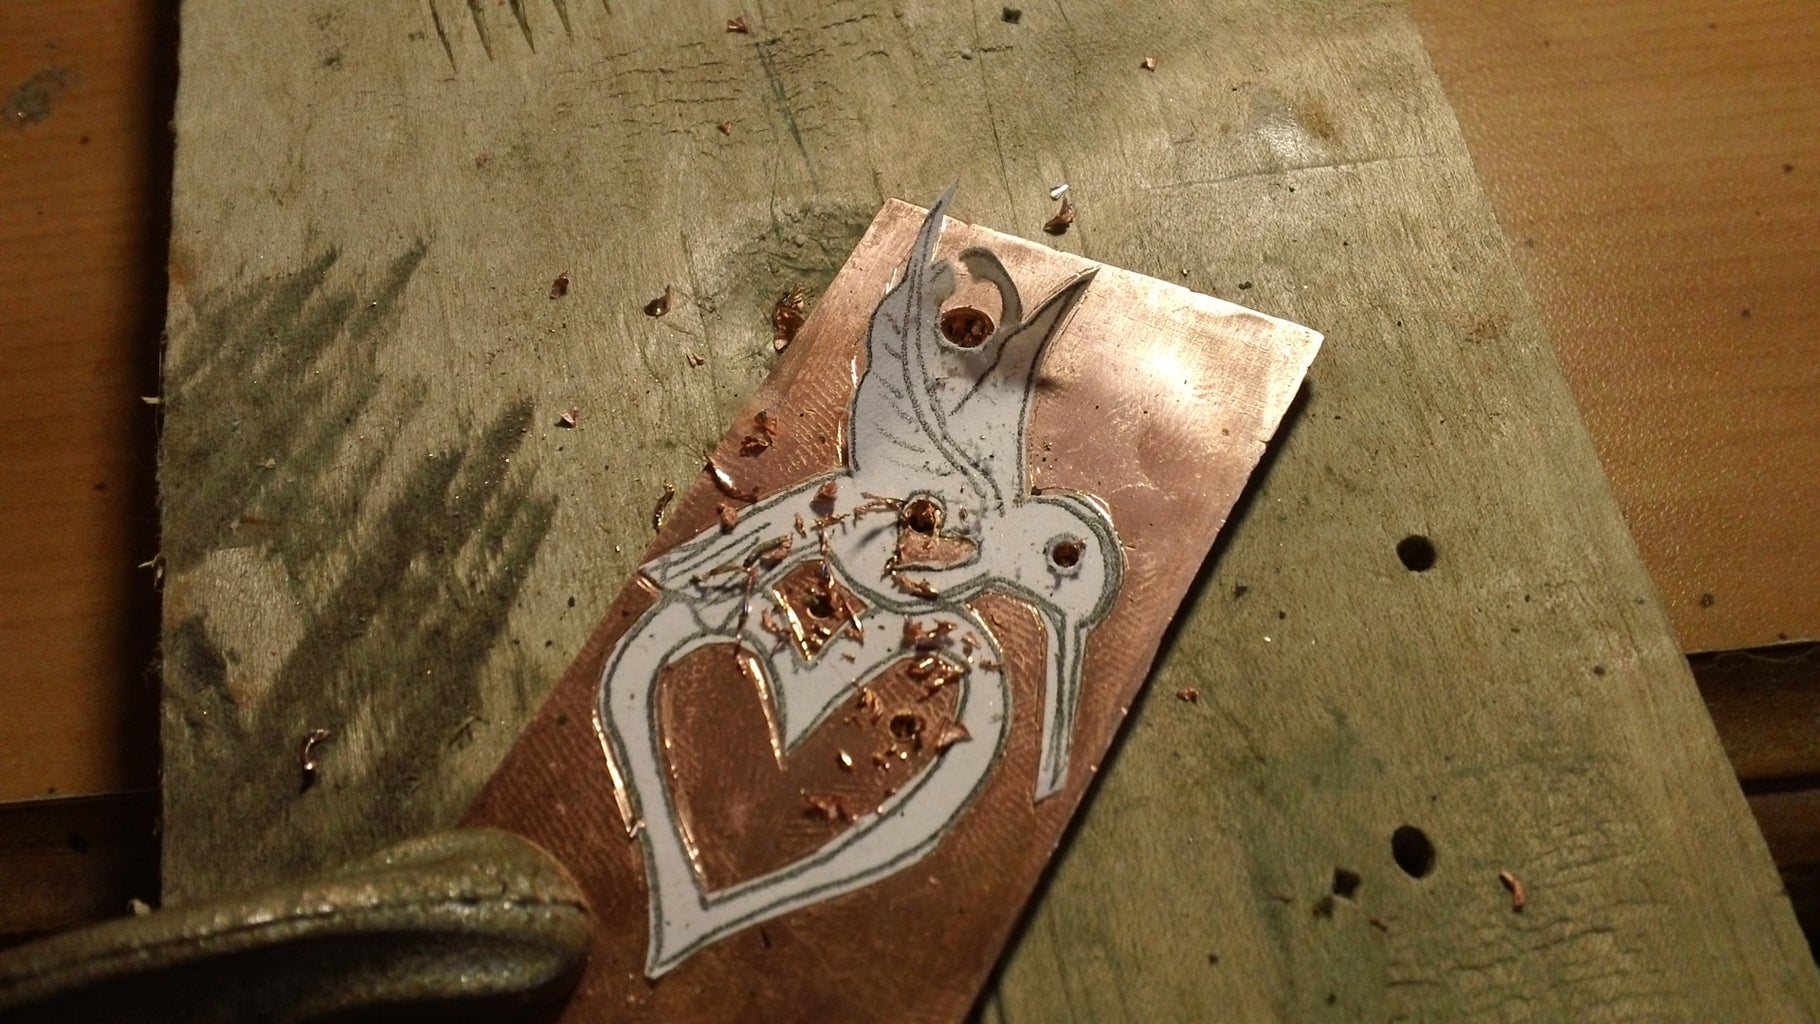 Transfering an Idea to Metal and Center Punching the Holes